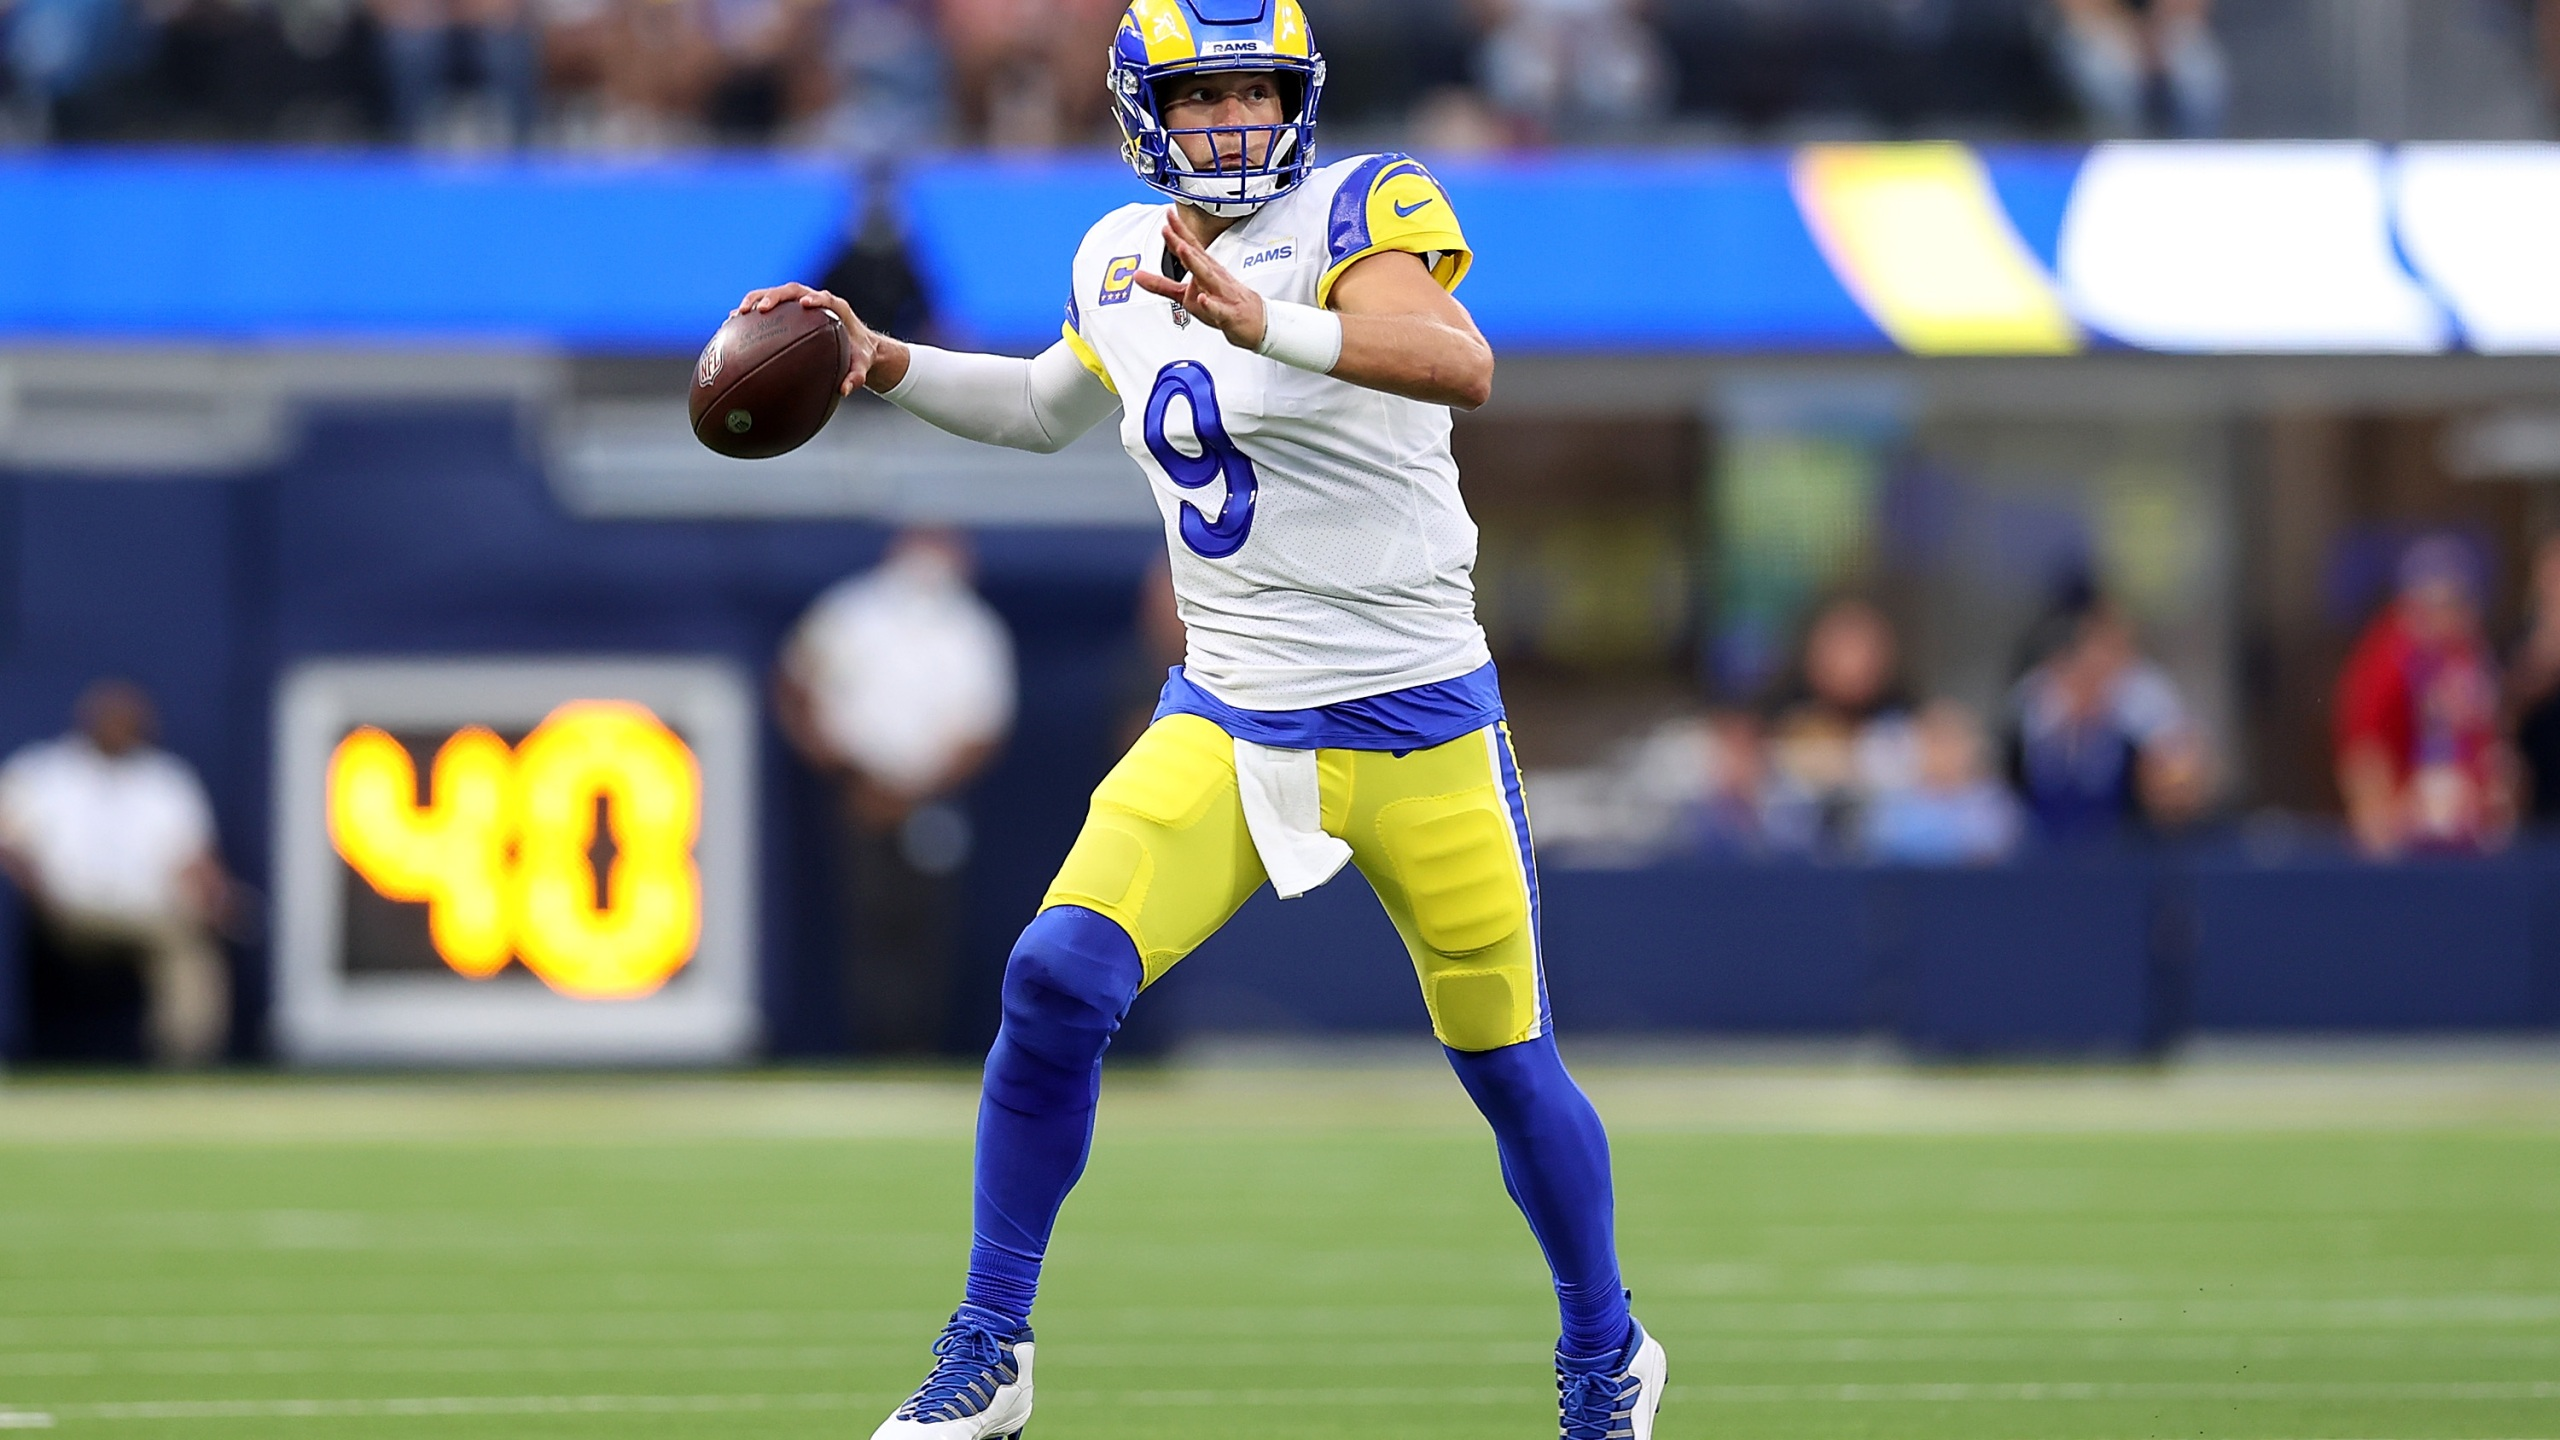 Matthew Stafford #9 of the Los Angeles Rams looks to pass during the first half against the Chicago Bears at SoFi Stadium on September 12, 2021 in Inglewood, California. (Ronald Martinez/Getty Images)